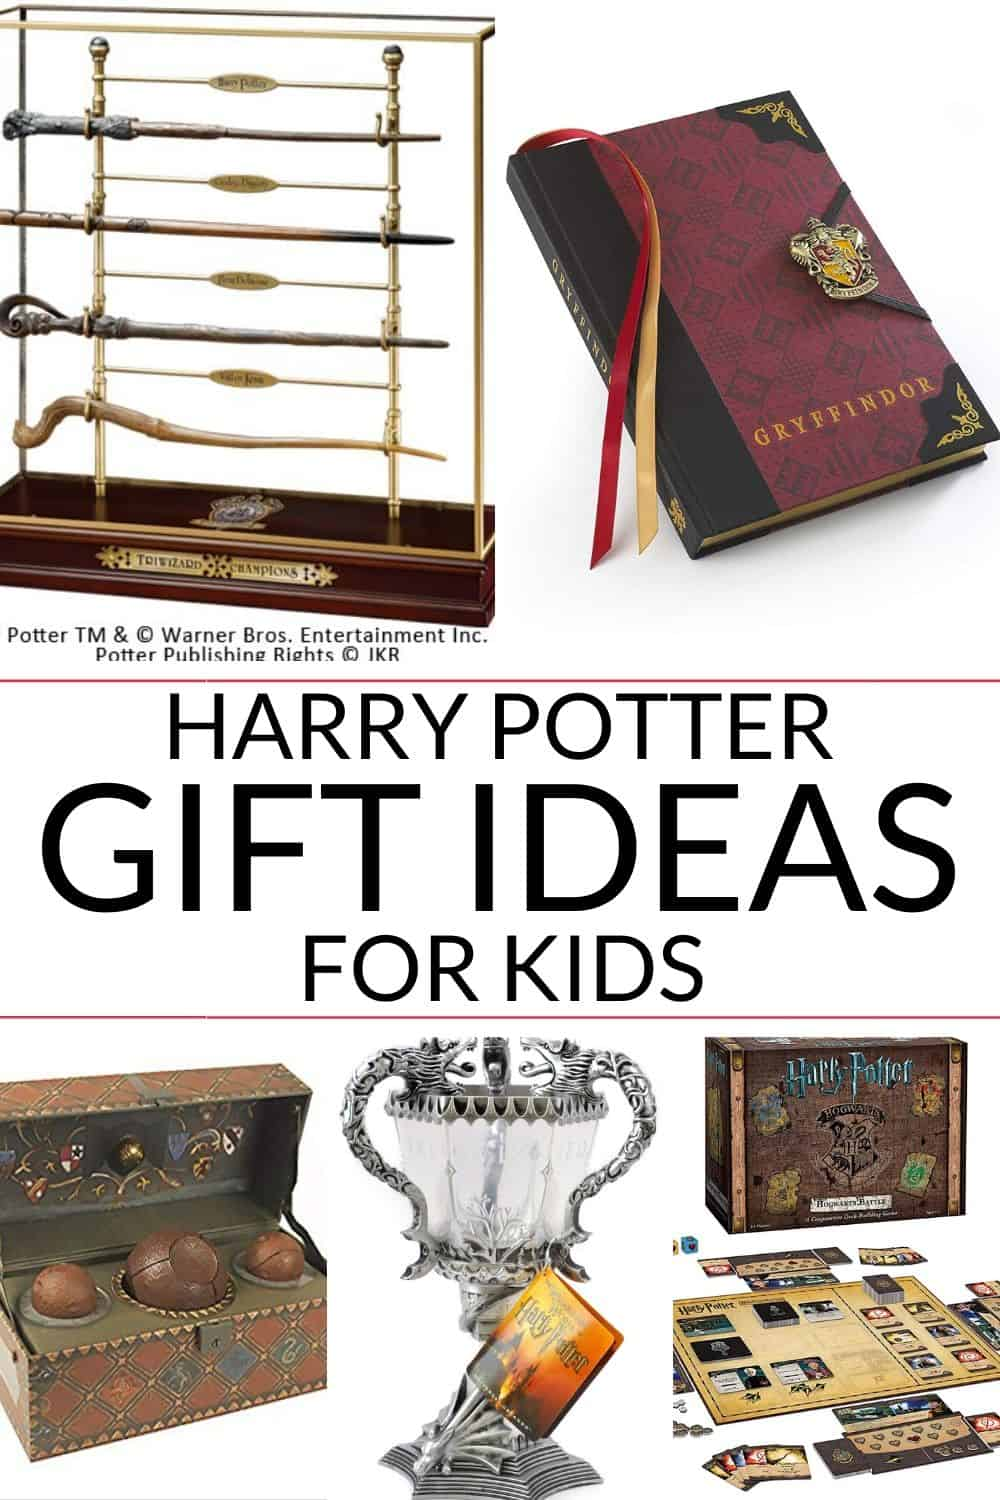 Collection of Harry Potter Gifts for kids